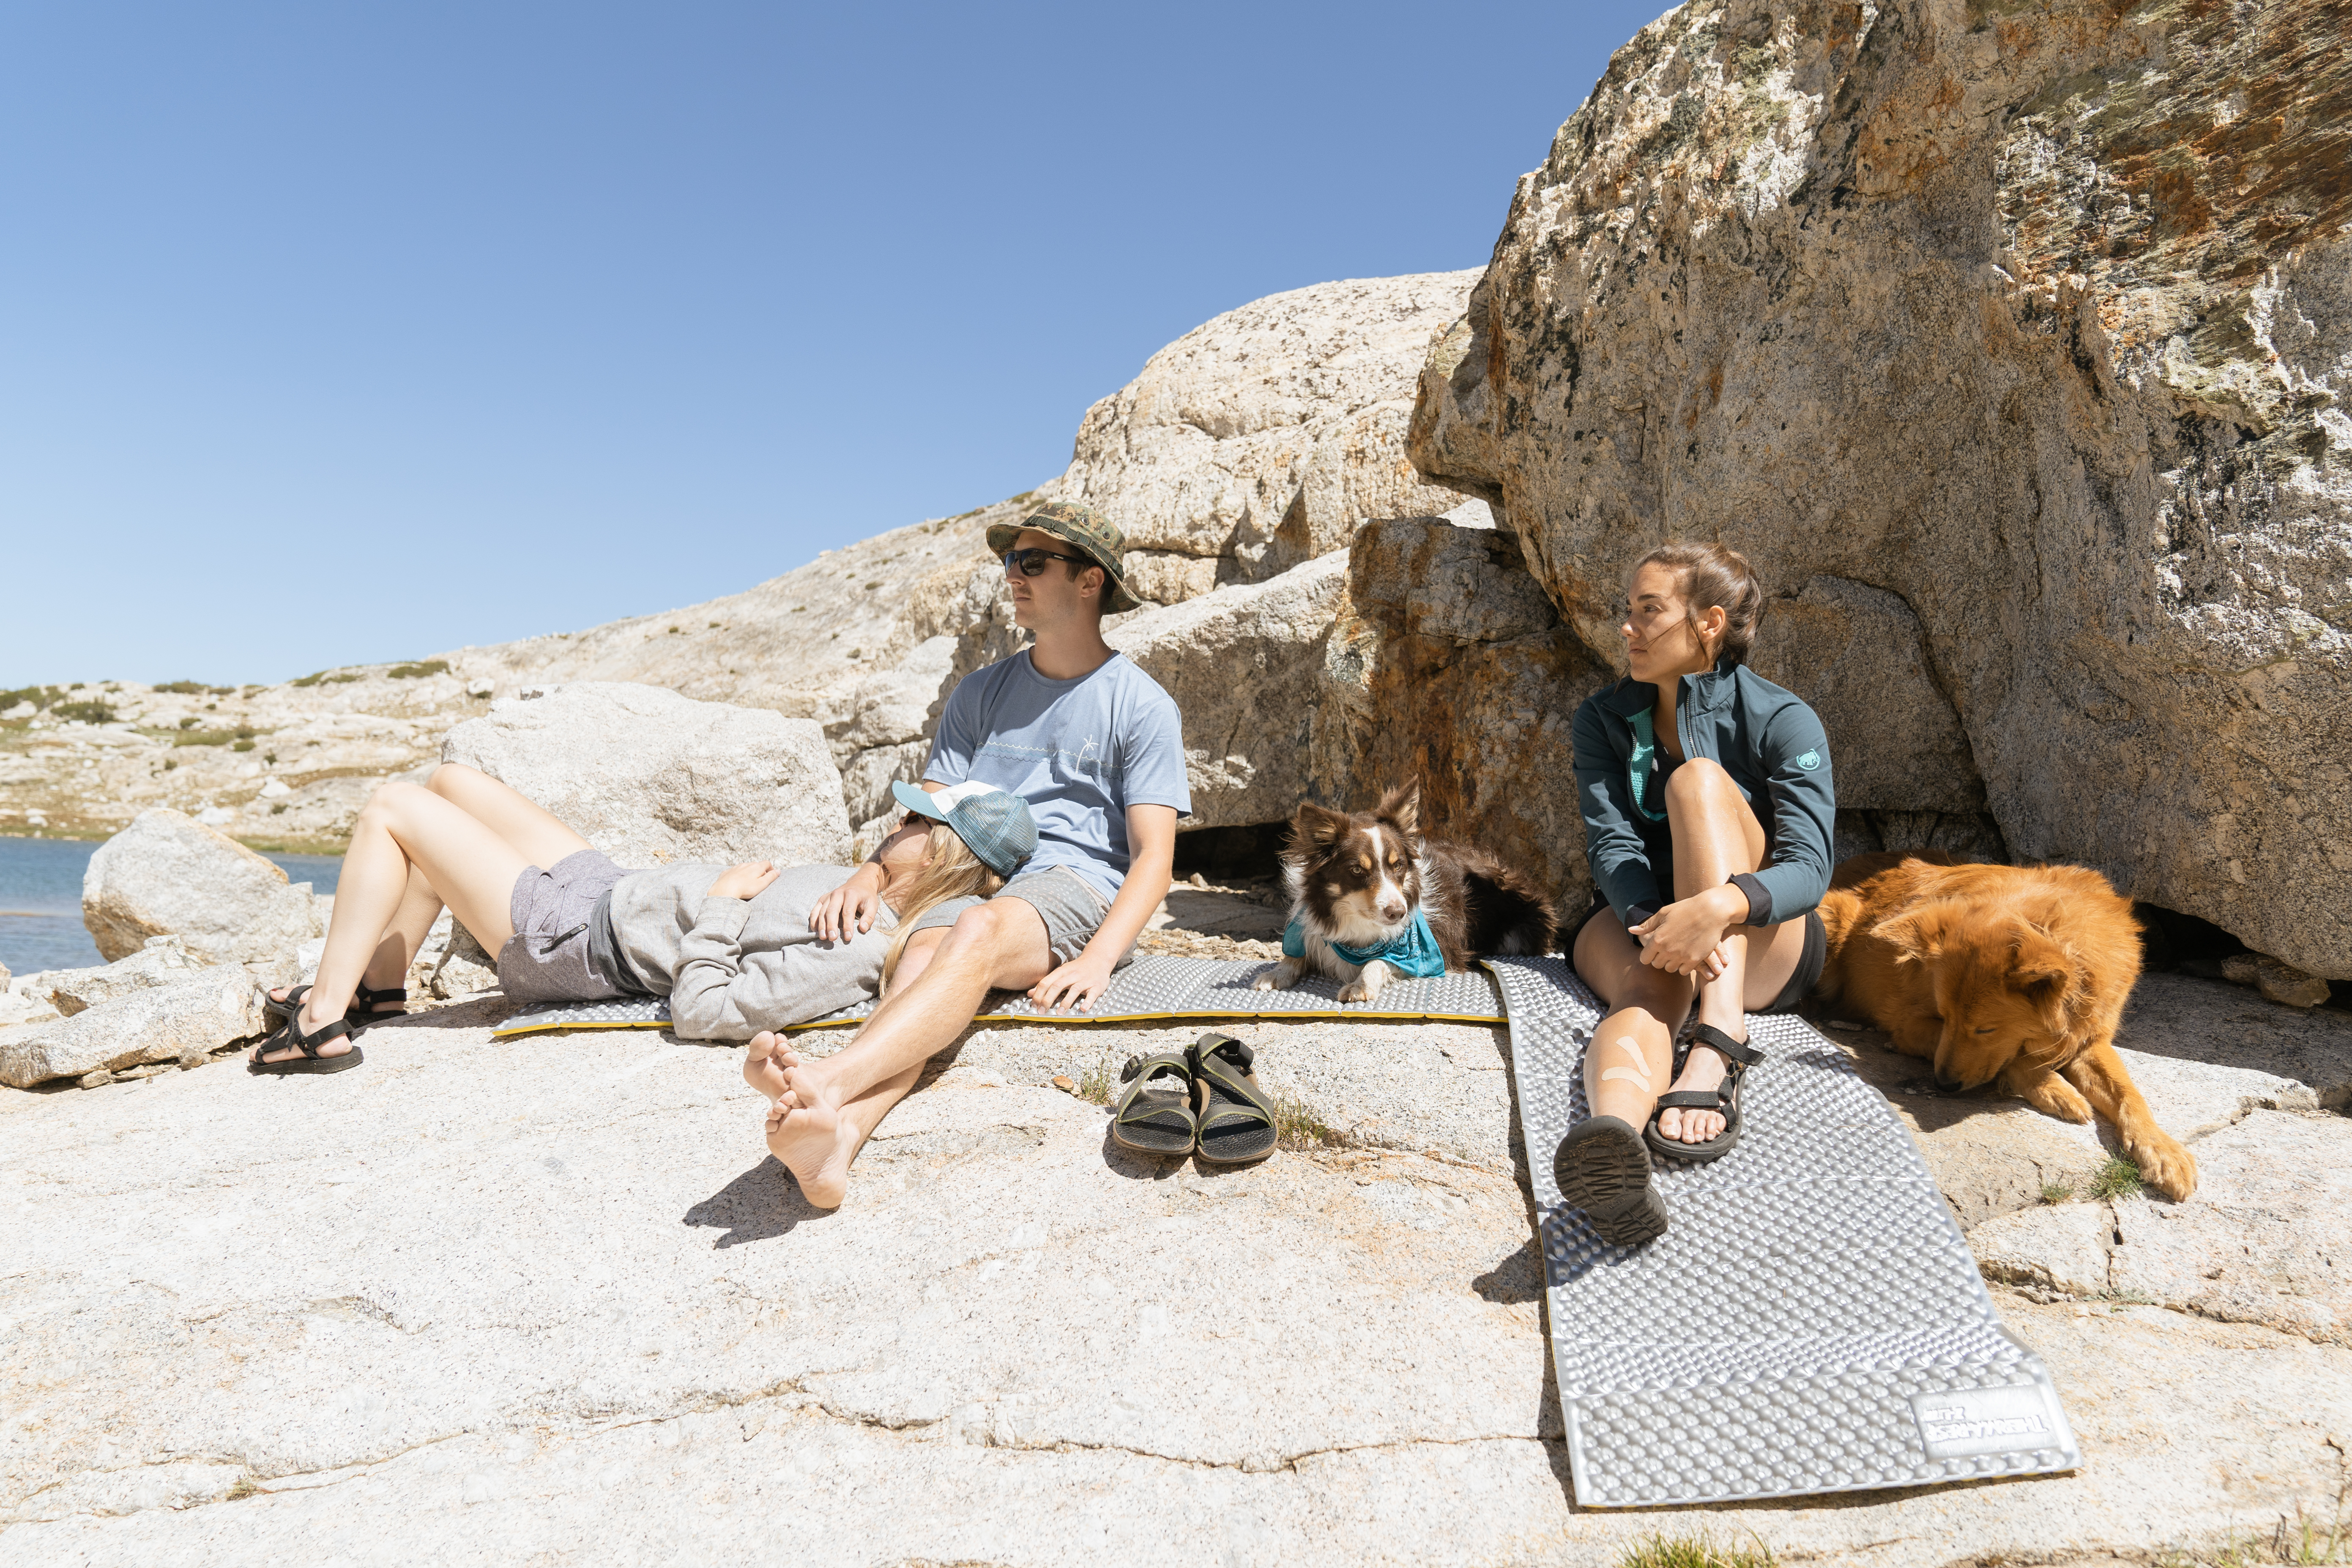 intro to backpacking group sitting on sleeping pads with dogs